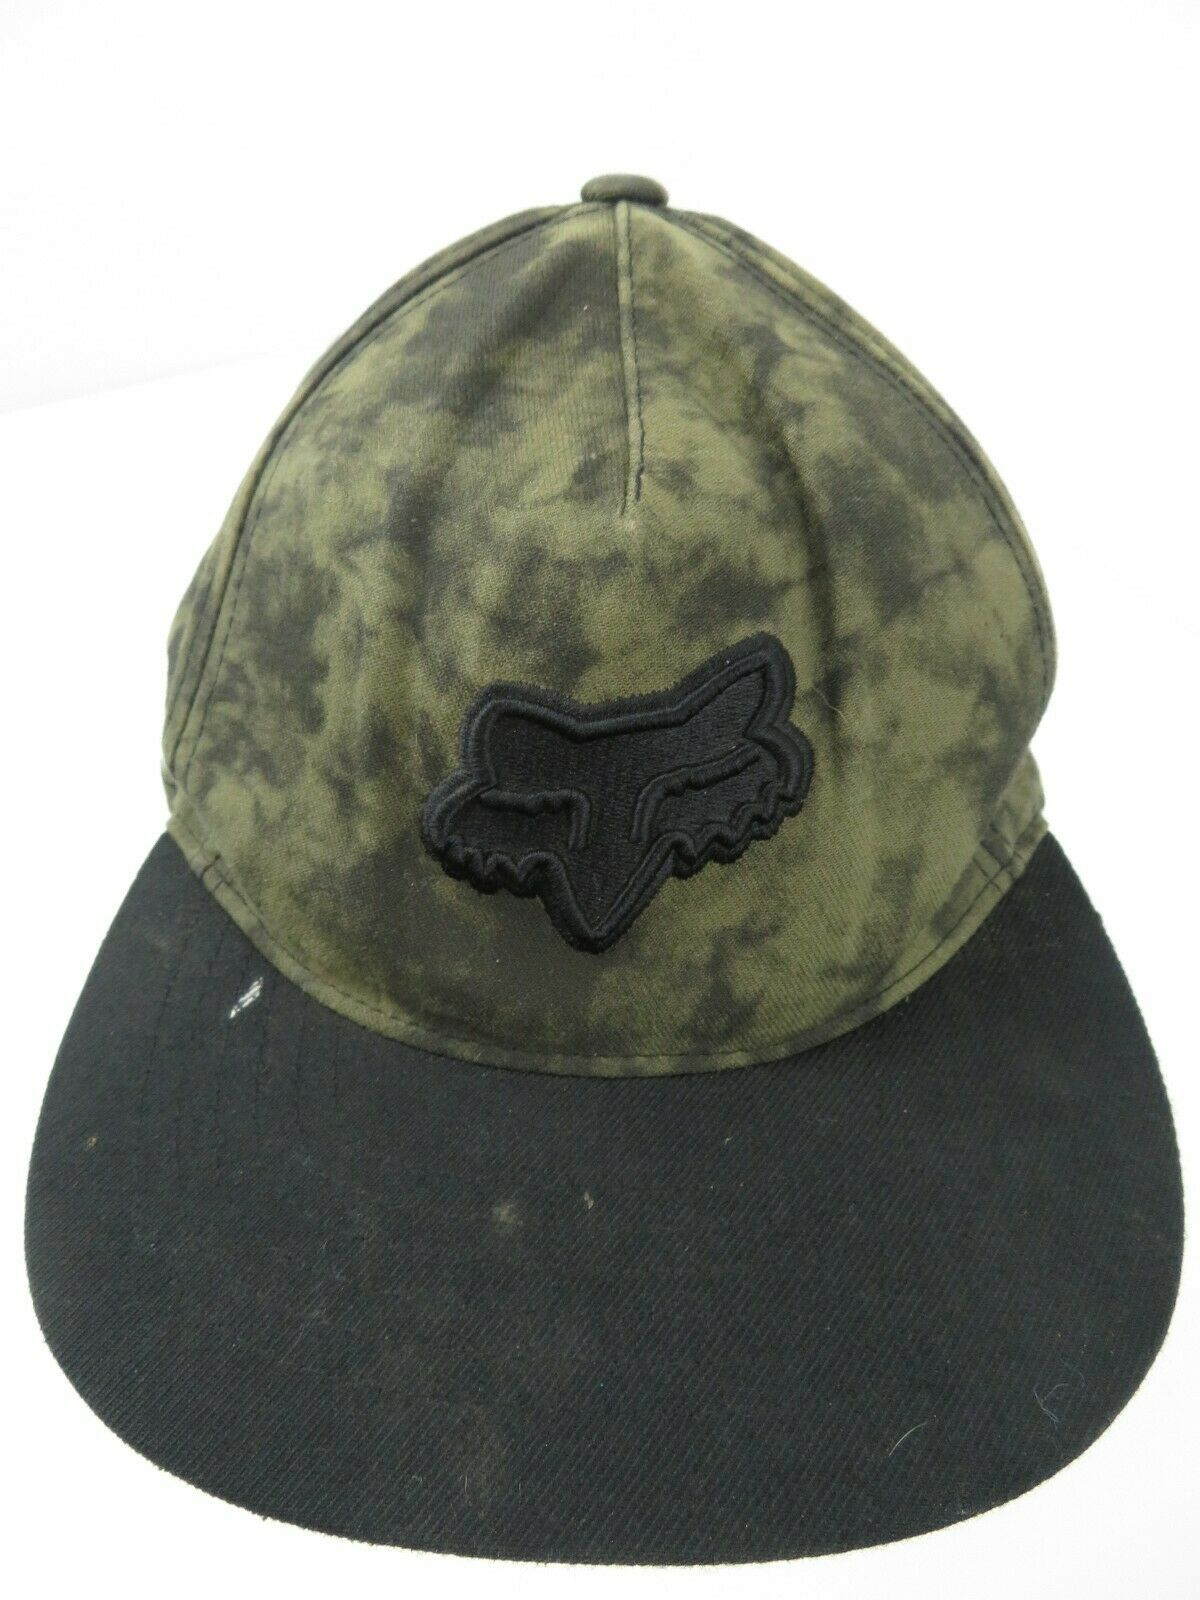 Primary image for Fox Racing Green Black Adjustable Adult Ball Cap Hat